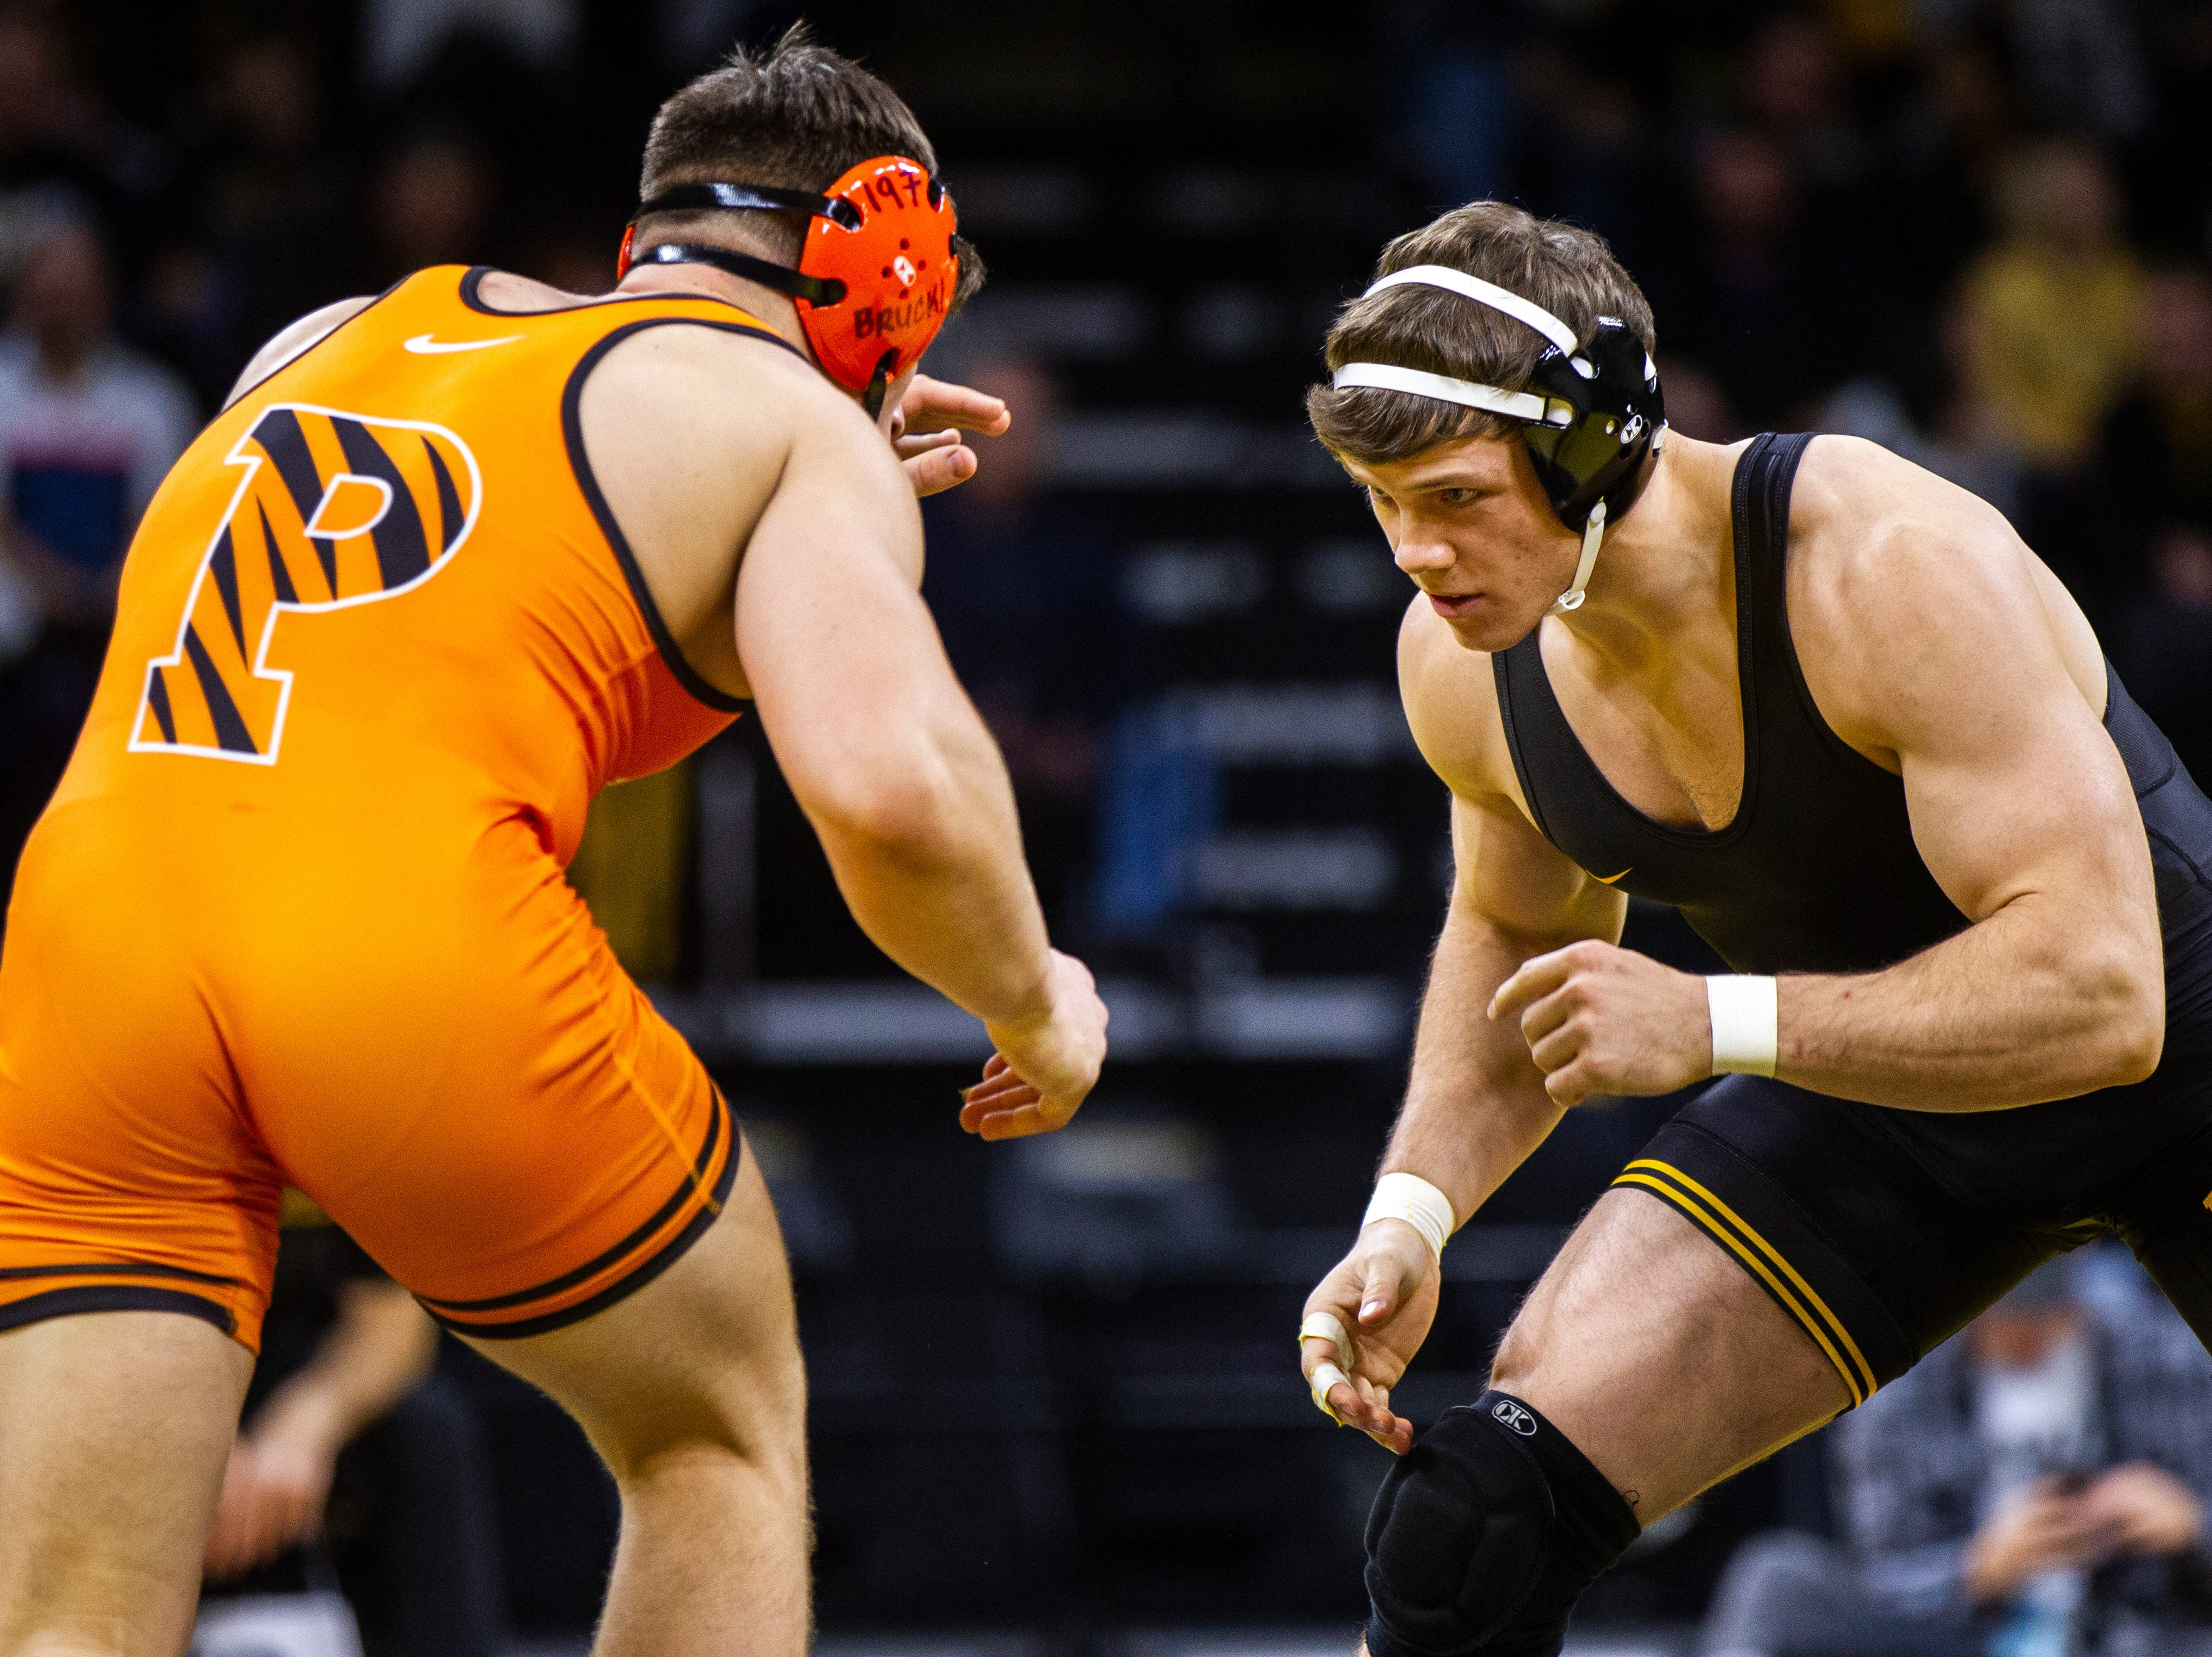 Iowa's Connor Corbin (right) wrestles Princeton's Patrick Brucki at 197 during an NCAA wrestle dual on Friday, Nov. 16, 2018, at Carver-Hawkeye Arena in Iowa City.